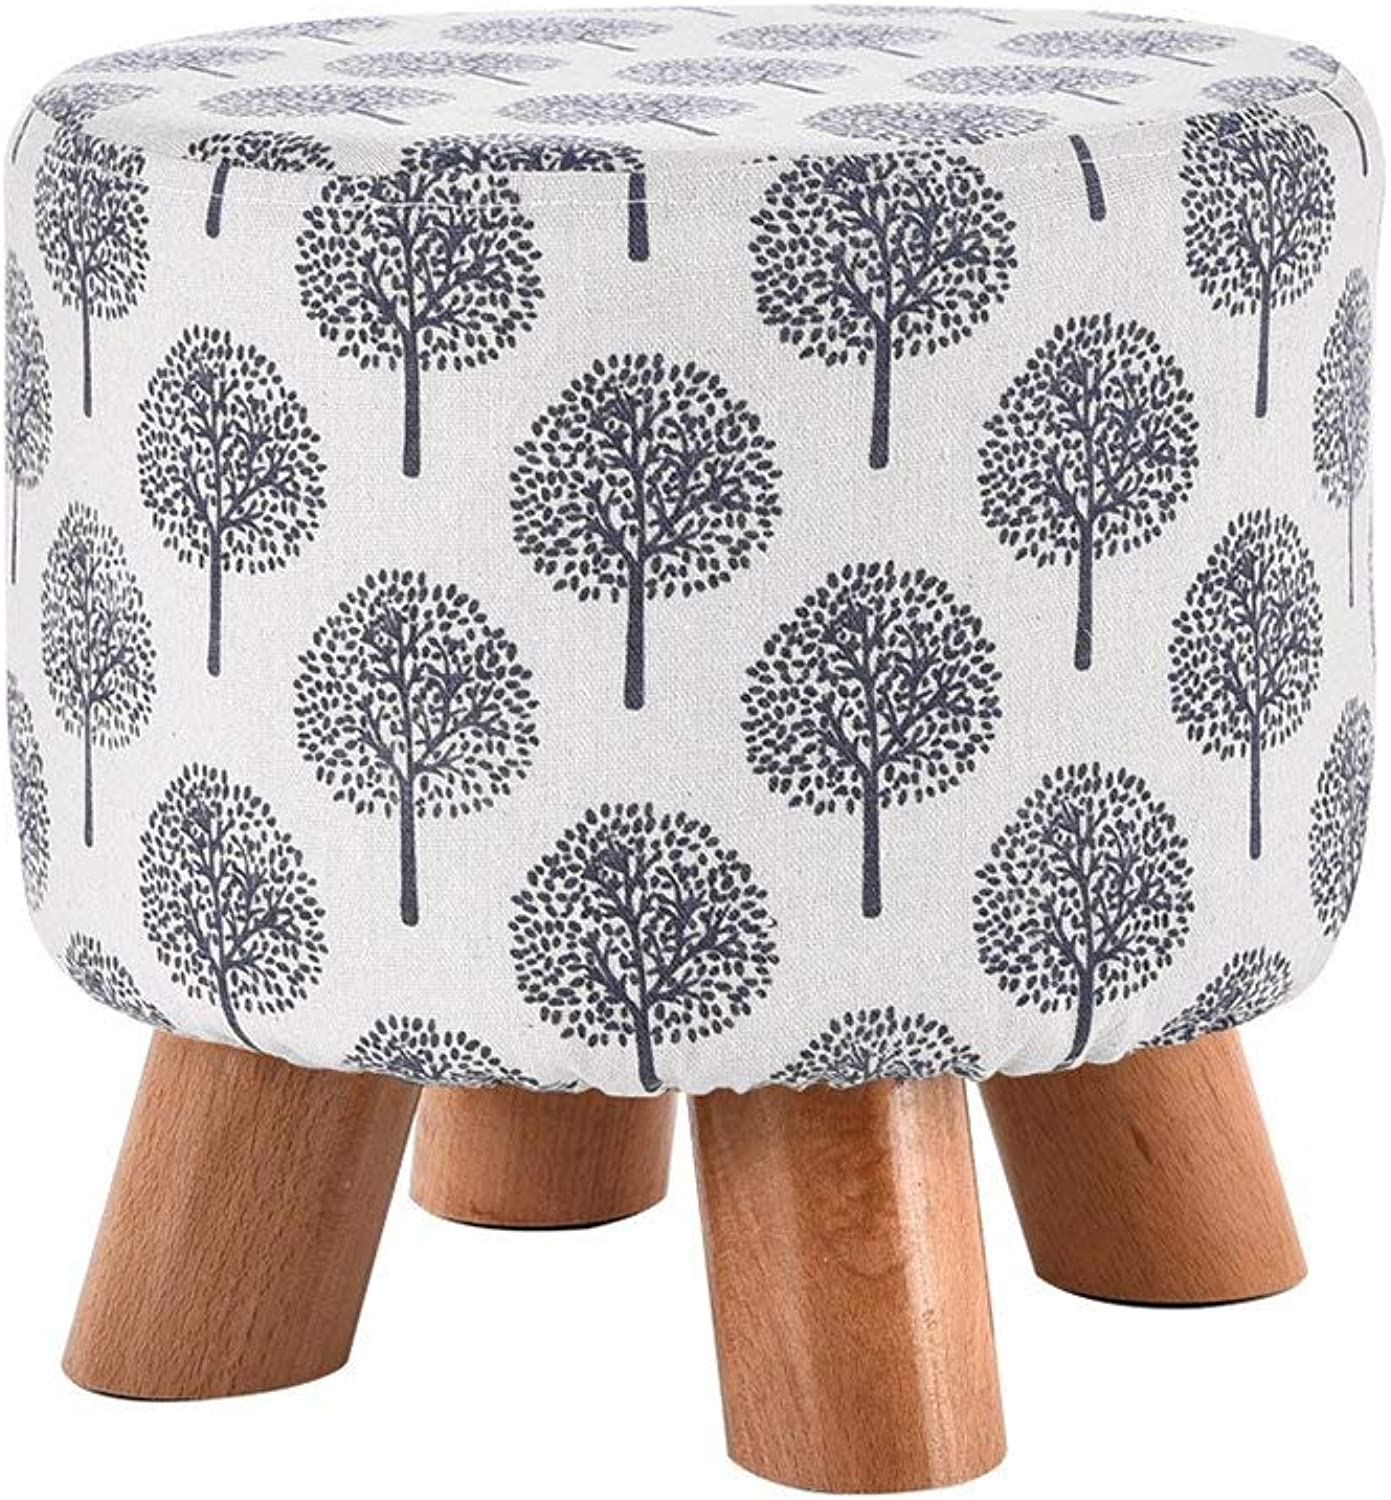 ChenDz Cute Stool Solid Wood Stool Change shoes Stool Sofa Stool Fashion Creative Stool shoes Small Stool Fabric Cushion Coffee Table Stool Small Bench Removable Washable (color   G)